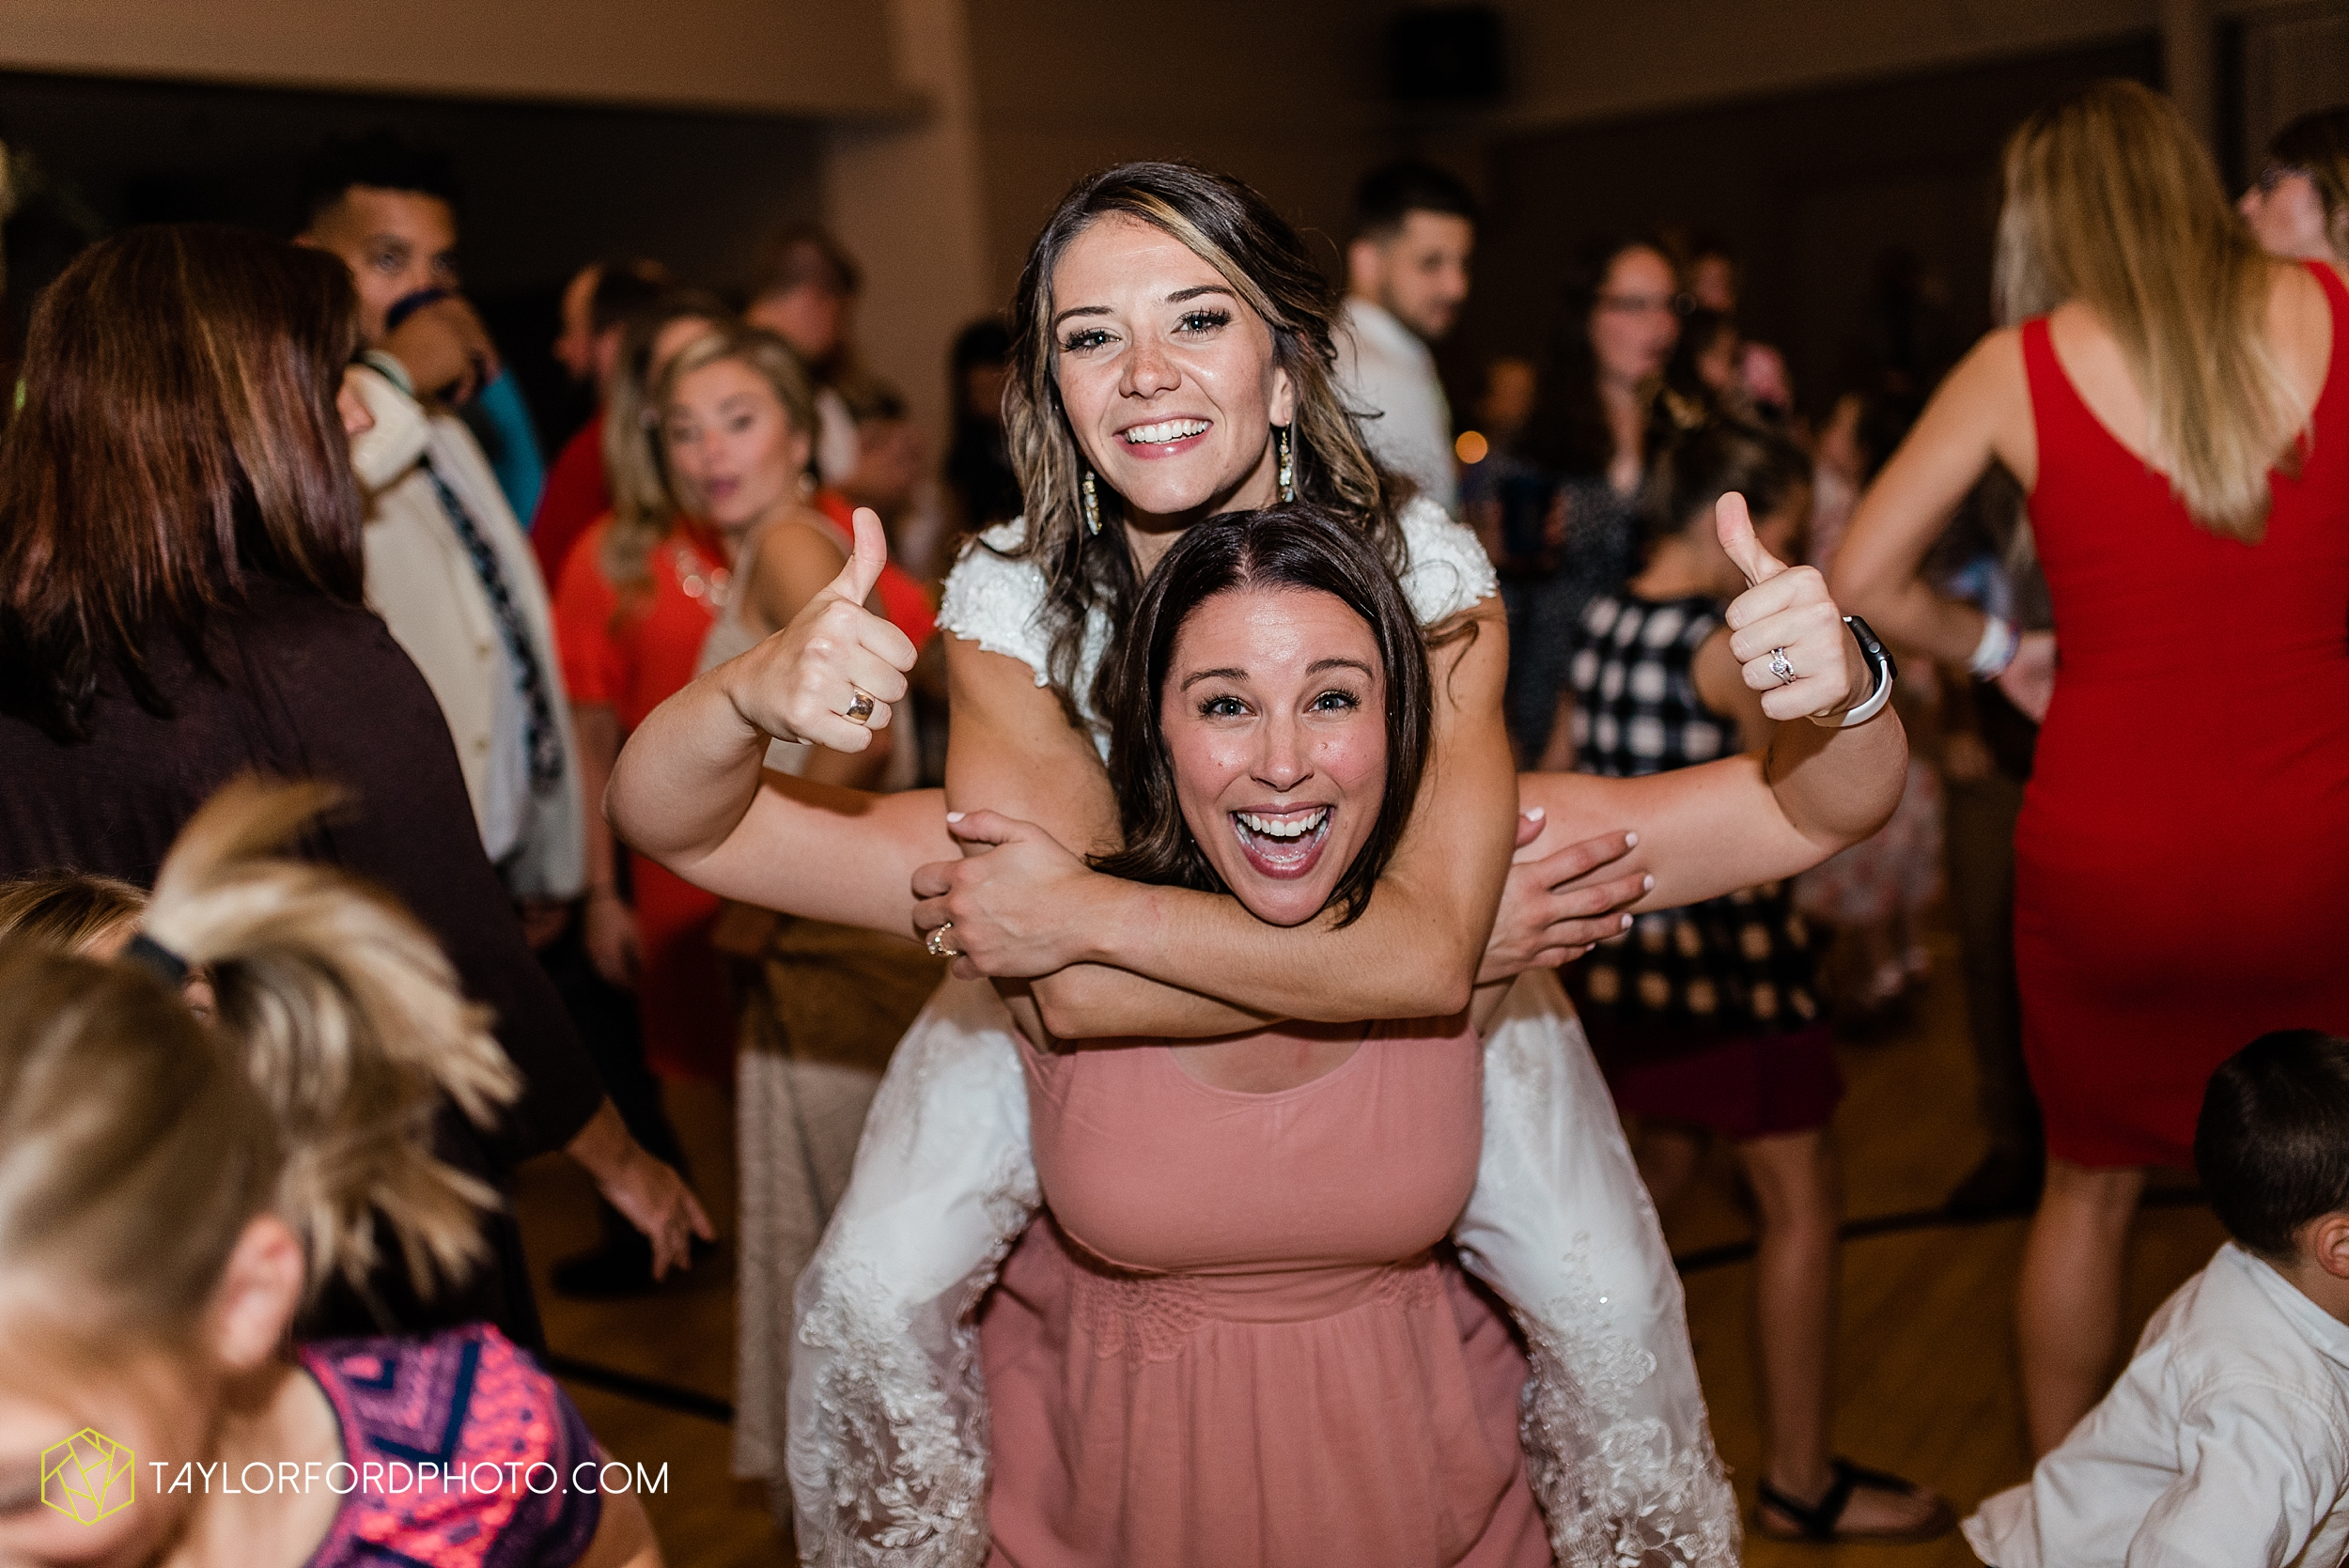 kacee-haden-sholl-second-story-saint-marys-knights-of-columbus-defiance-ohio-wedding-photographer-taylor-ford-photography_0198.jpg